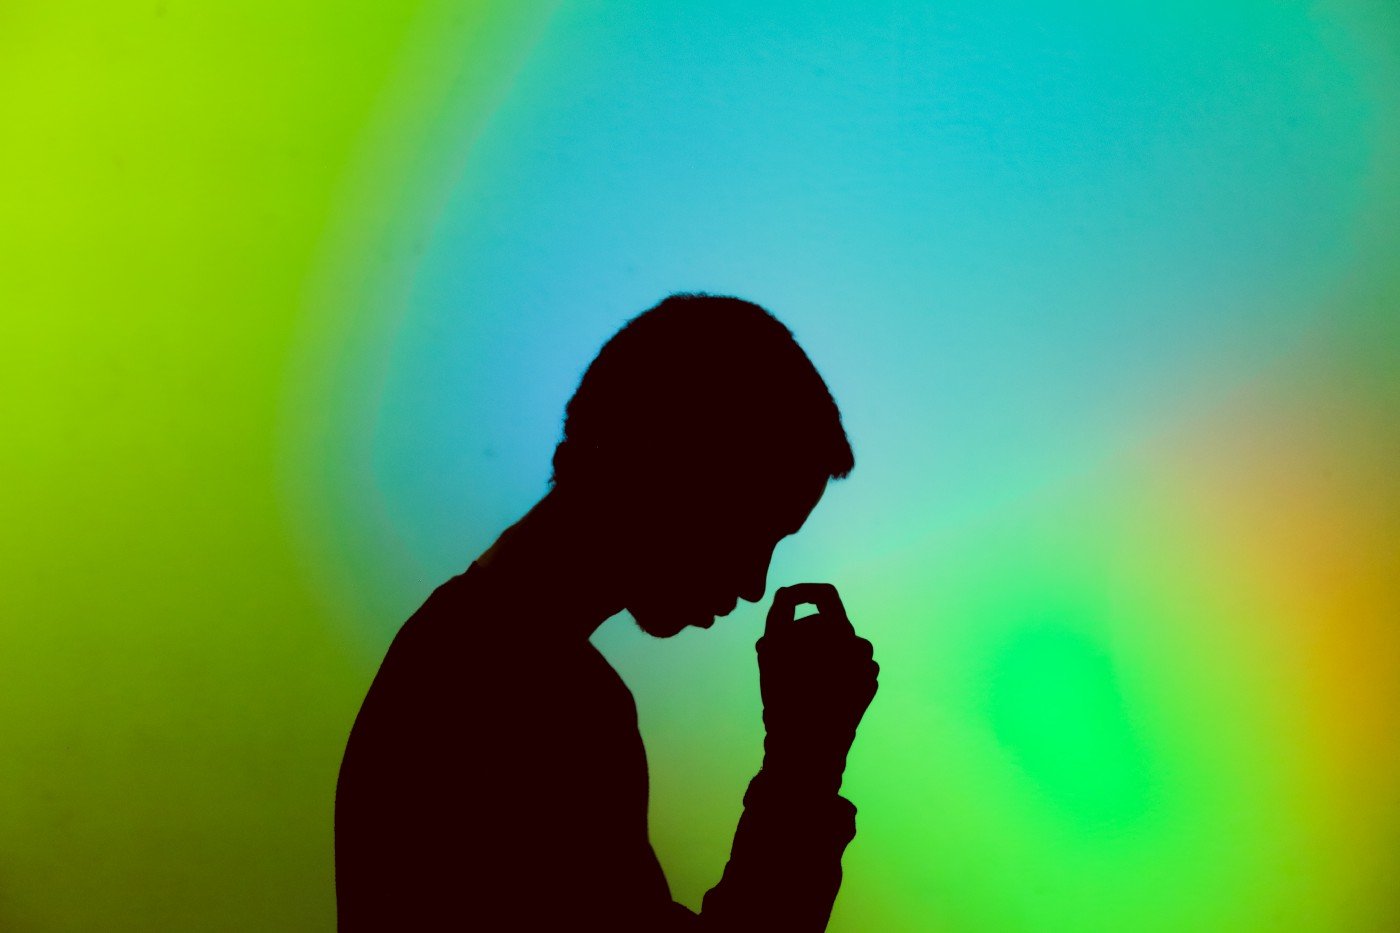 Silhouette of a young person bringing their hand up to cover their face